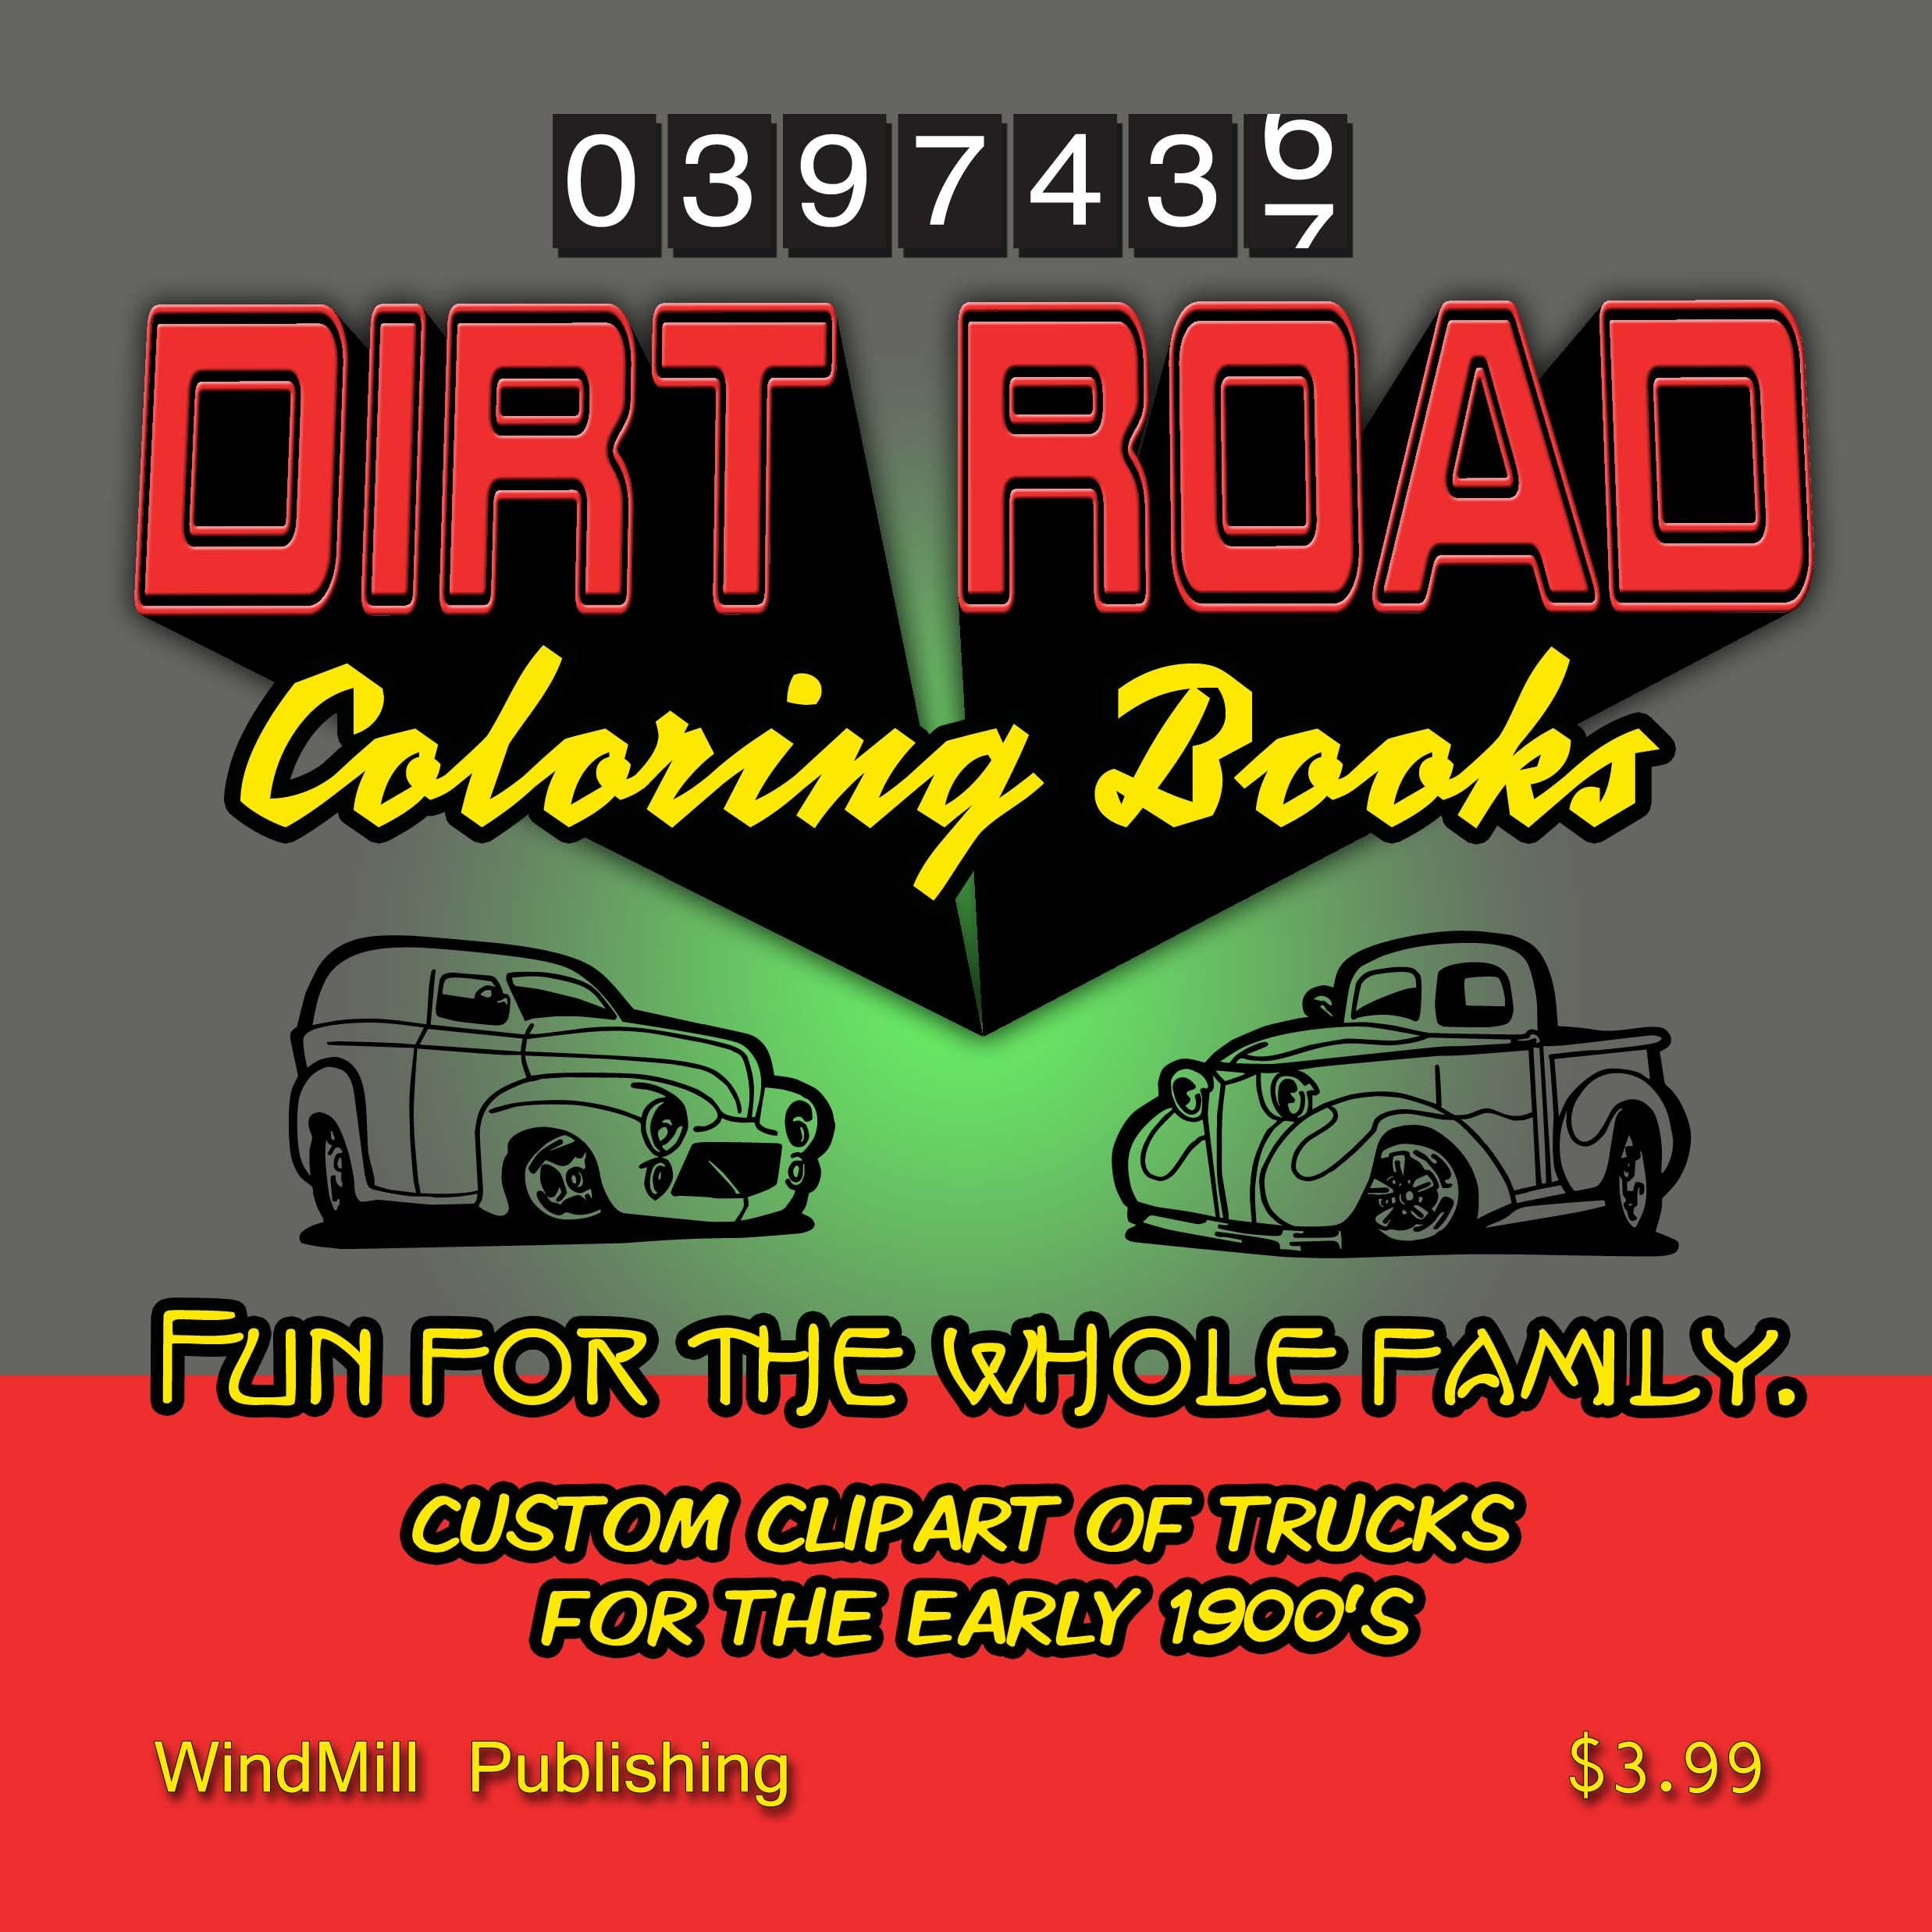 Cute Frozen Coloring Book Huge Adult Themed Coloring Books Shaped Monster High Coloring Books Glassjaw Coloring Book Young Bird Coloring Book ColouredAnti Coloring Book Custom Coloring Book : Truck Edition | Printcuda